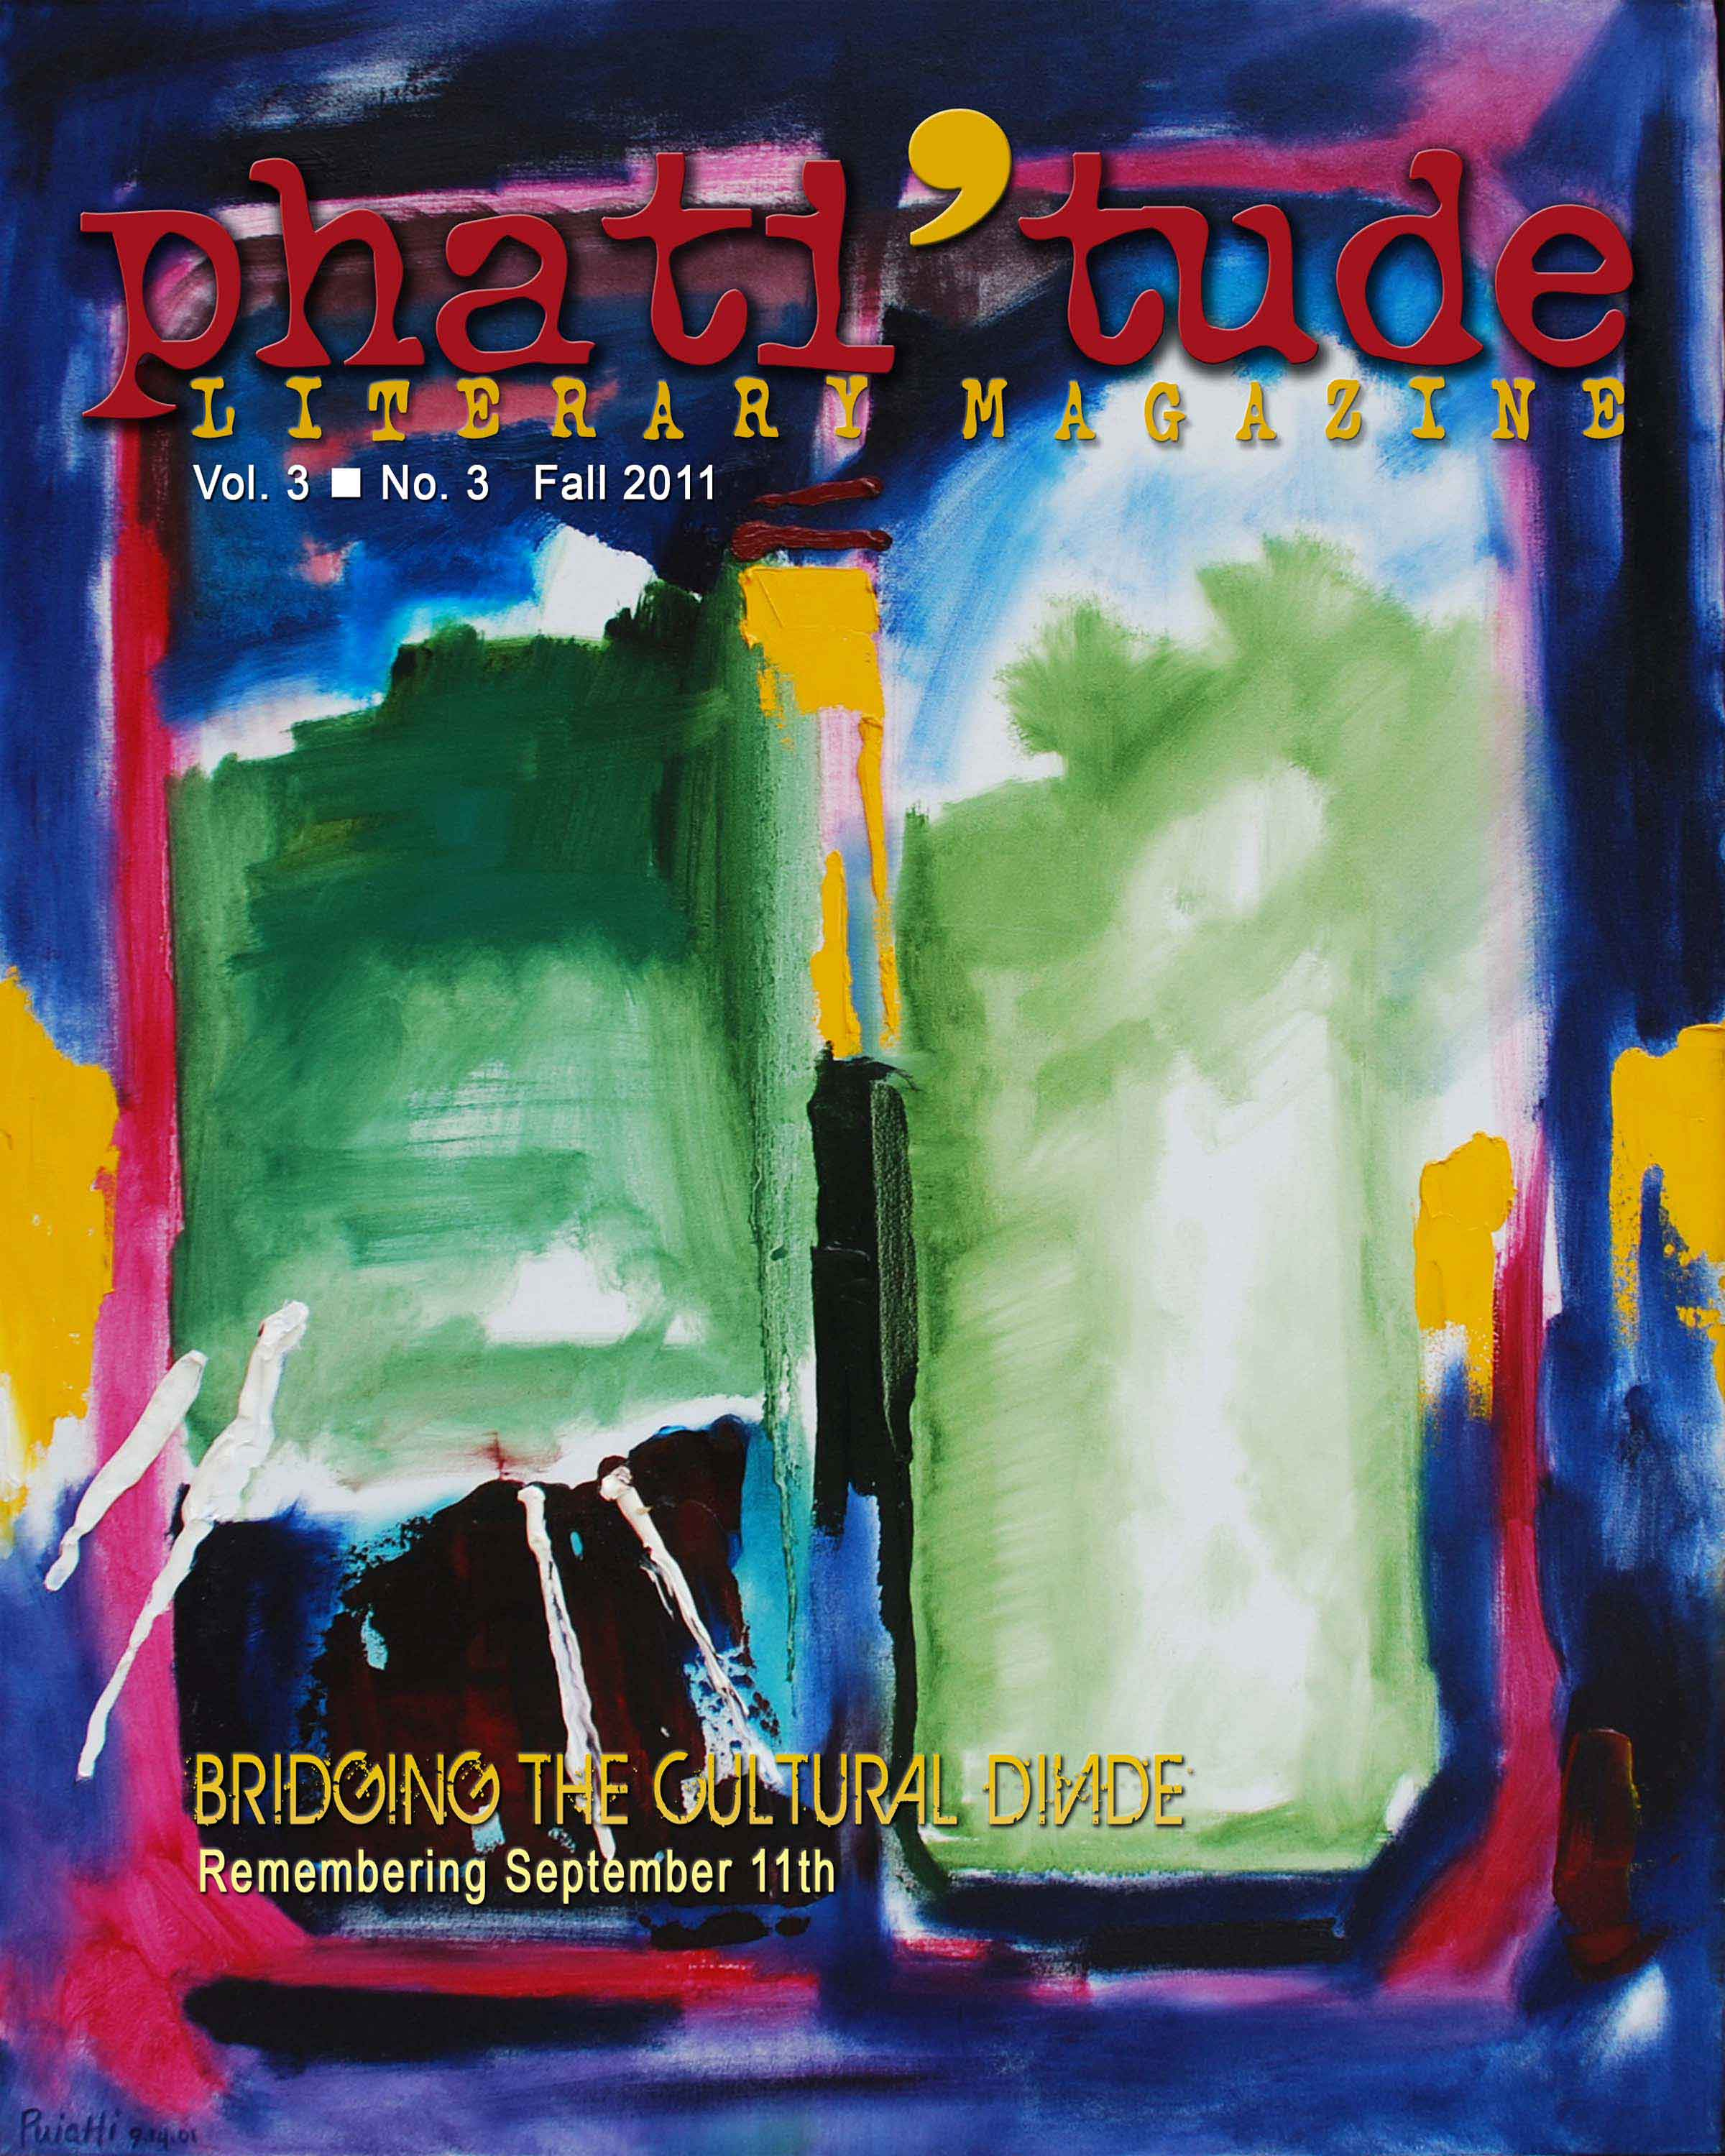 Cover of phati'tude Literary Magazine